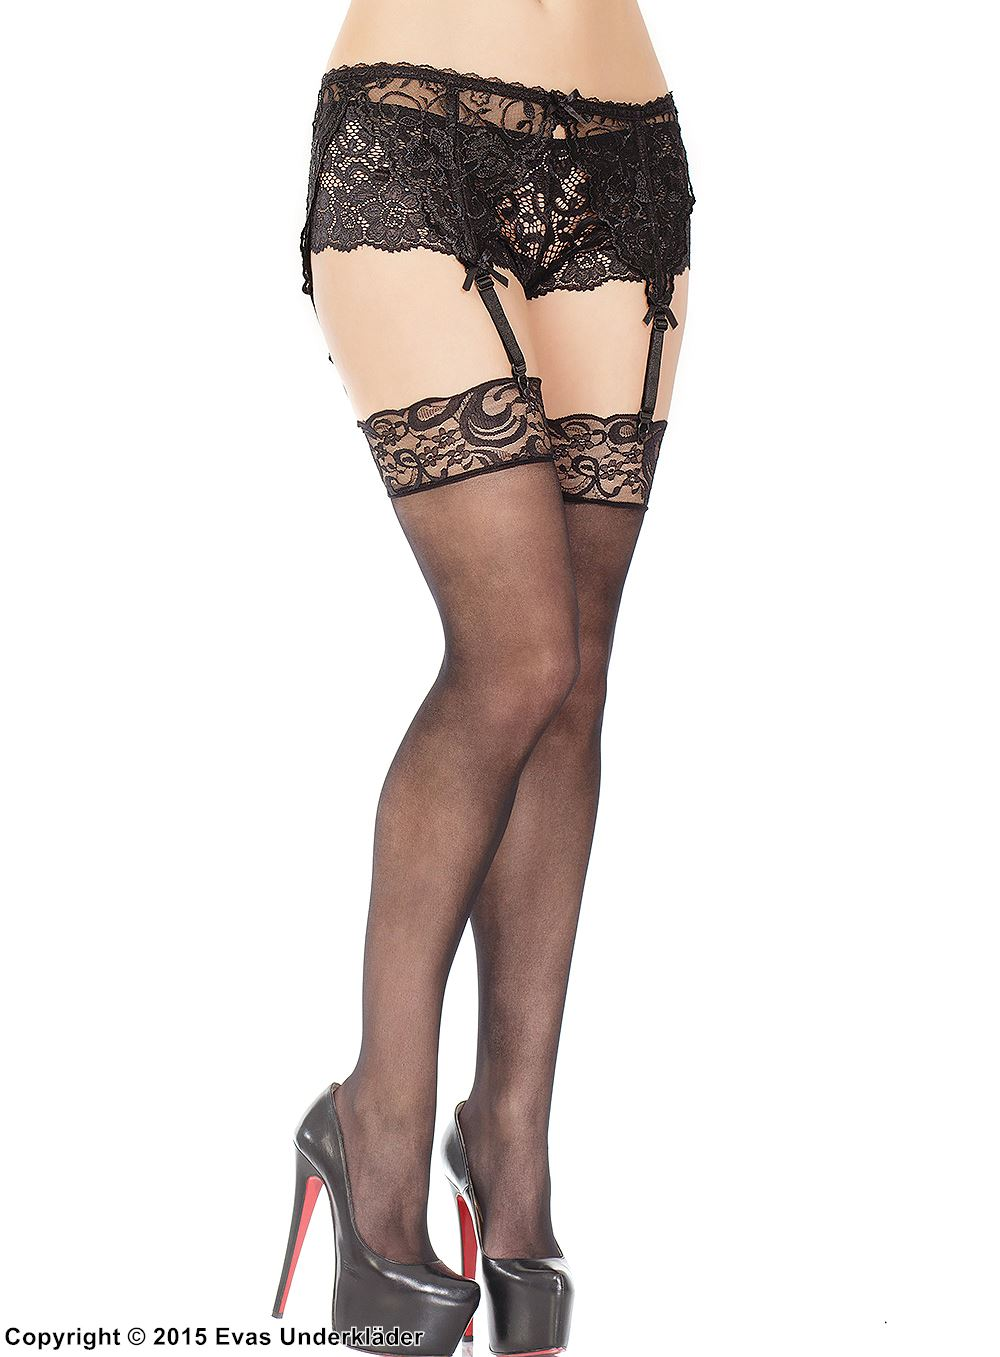 Thigh high stockings, lace edge, elegant design